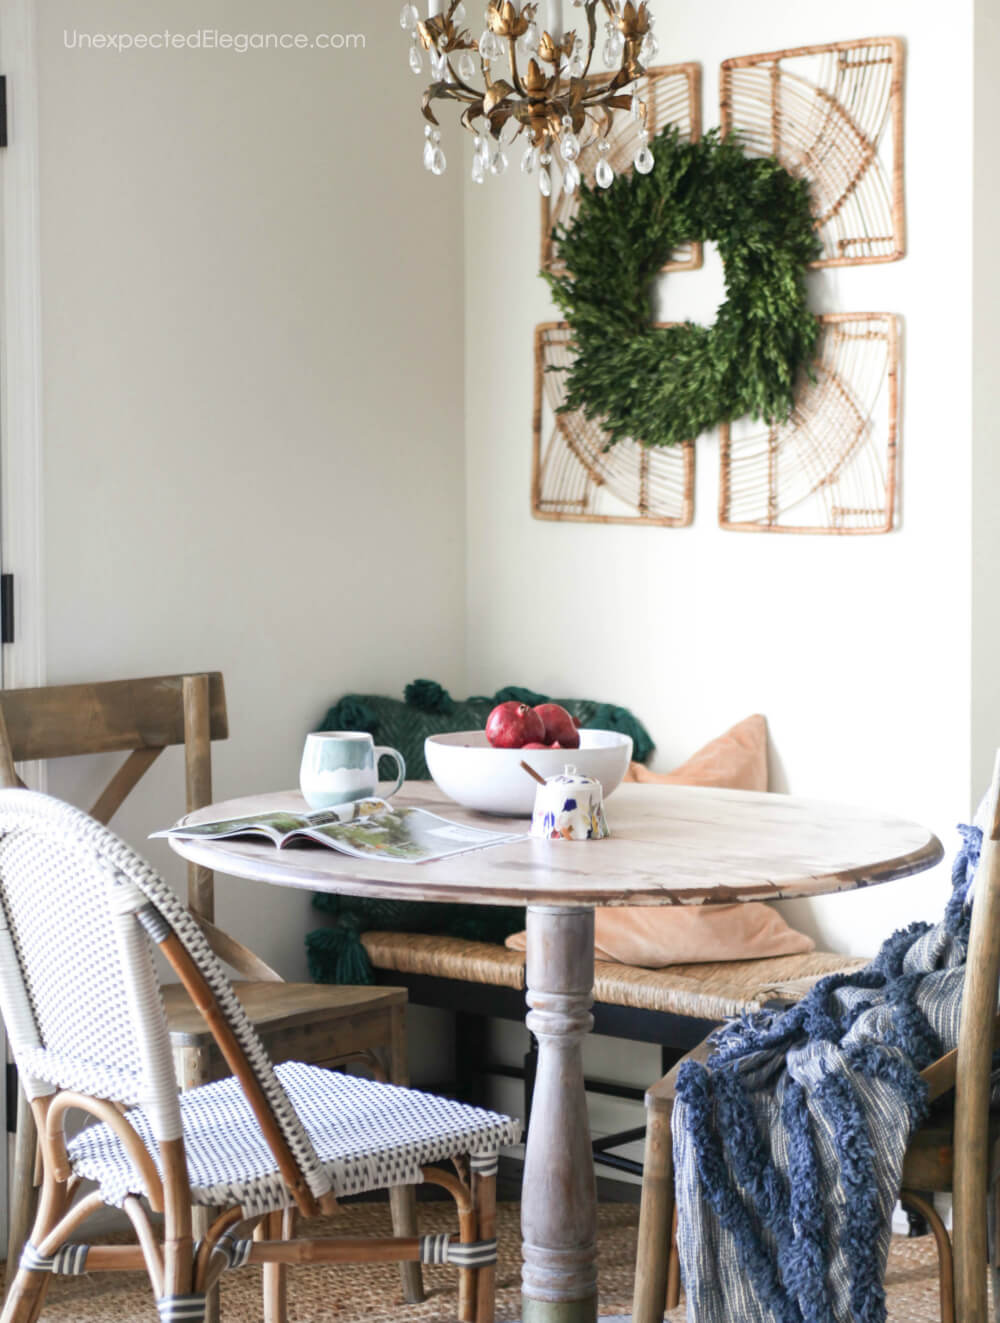 Quick and easy Christmas decor ideas.